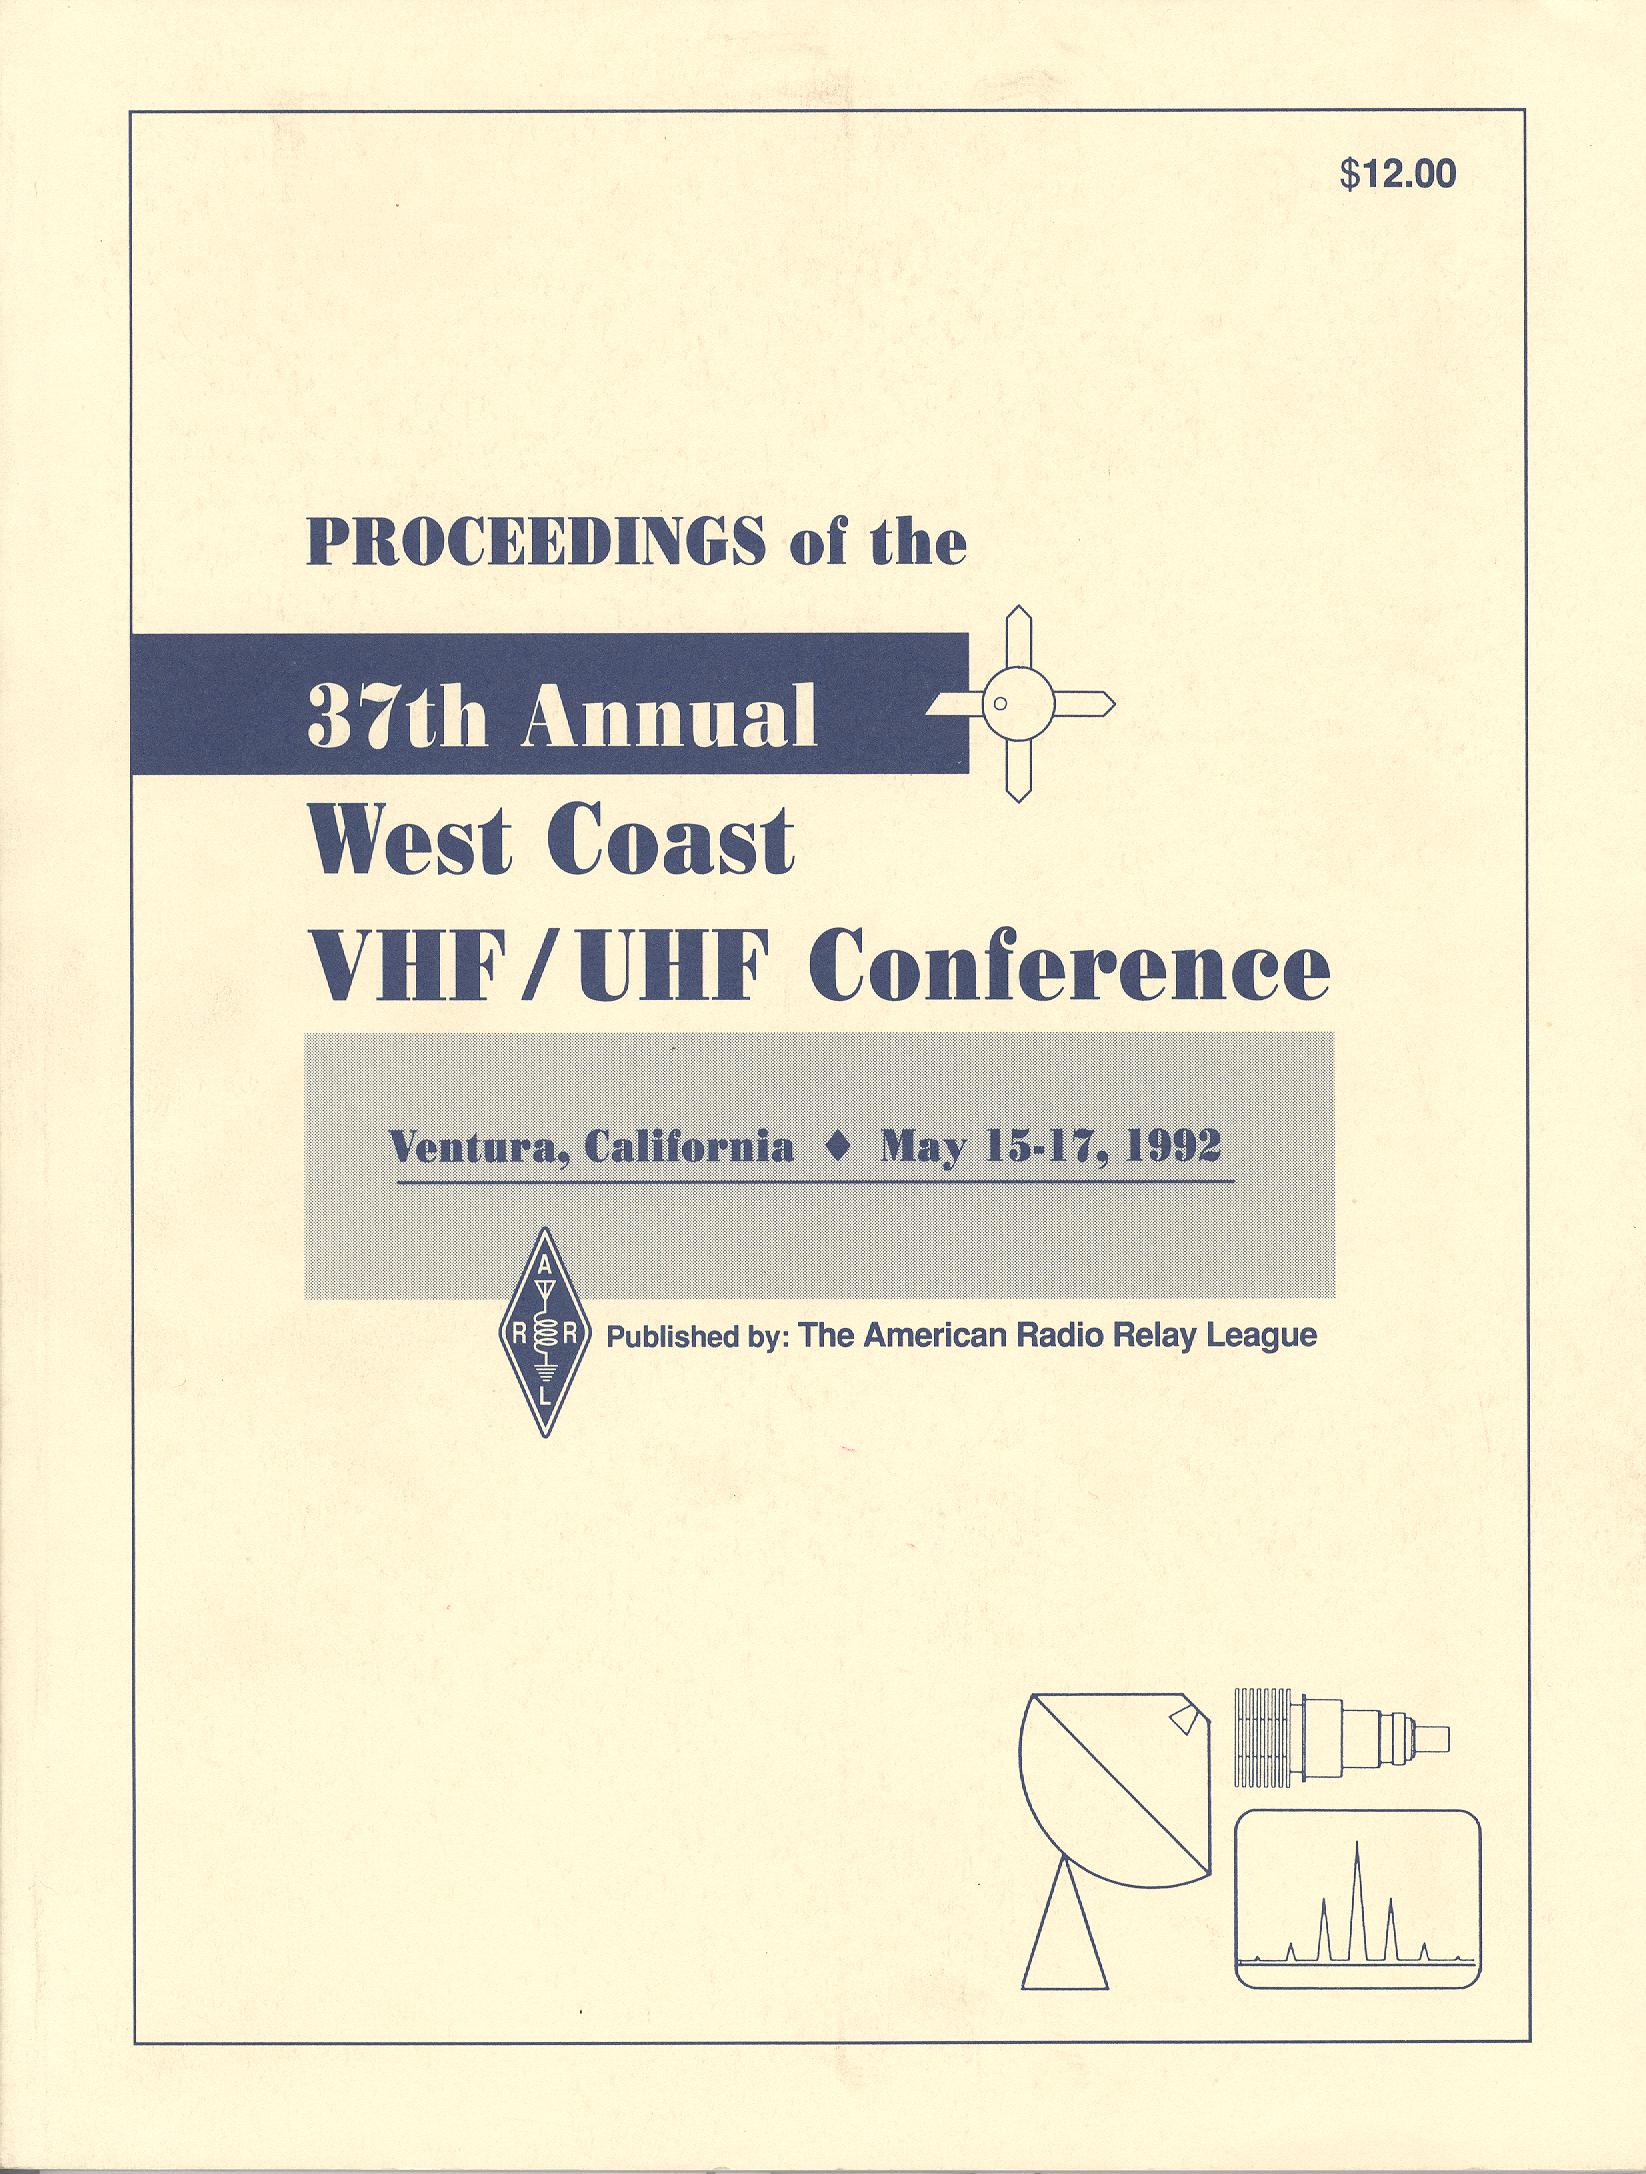 Proceendings of the 37th Annual West Coast VHF/UHF Conference 1992